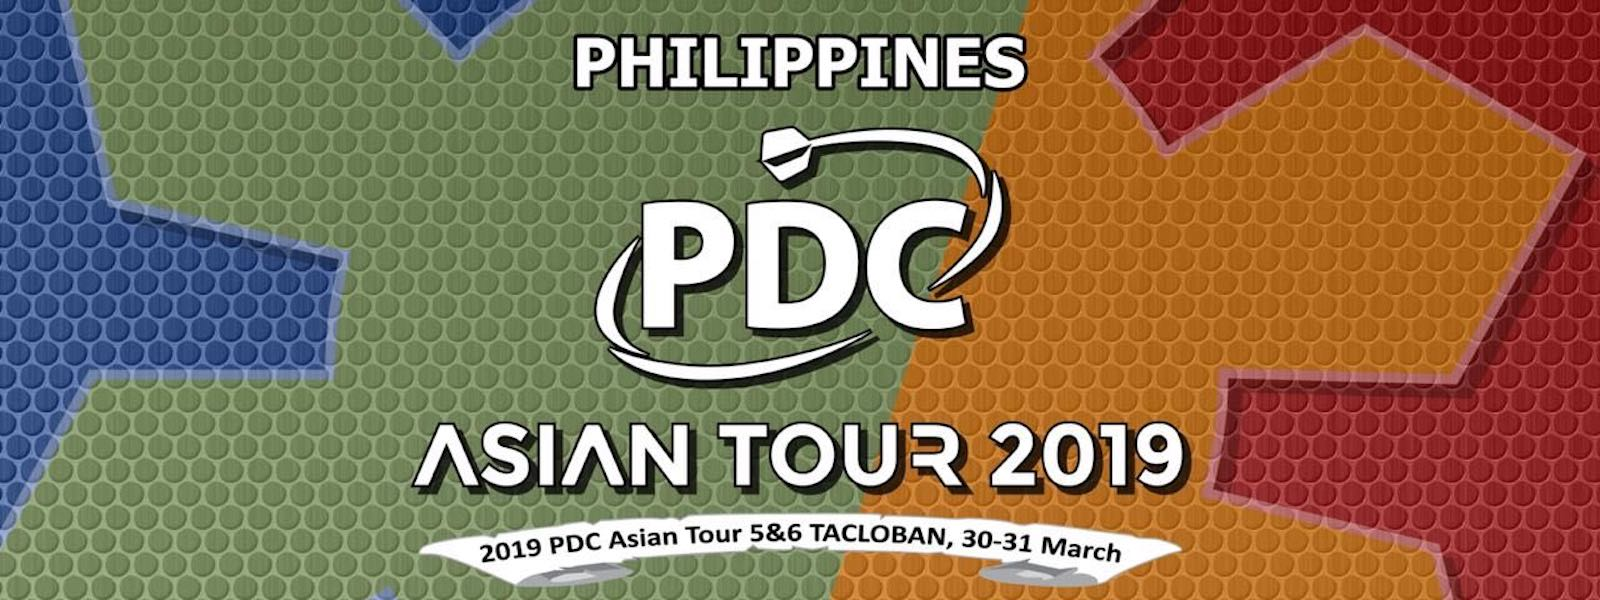 【PDC Asian Tour 2019】STAGE 5&6